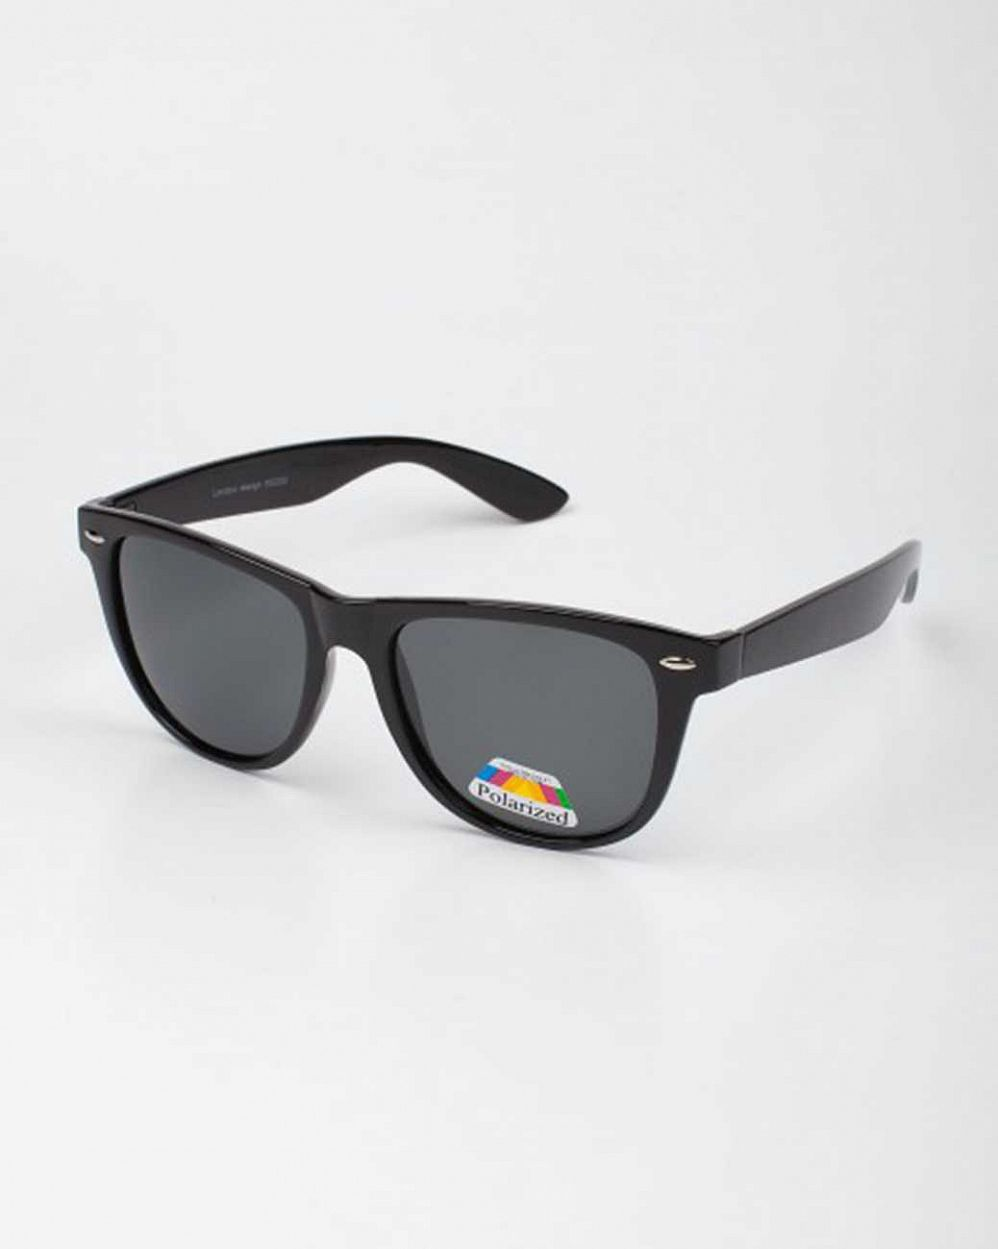 Очки Sunglasses Classic Wayfarer Polarized Black цена в Москве